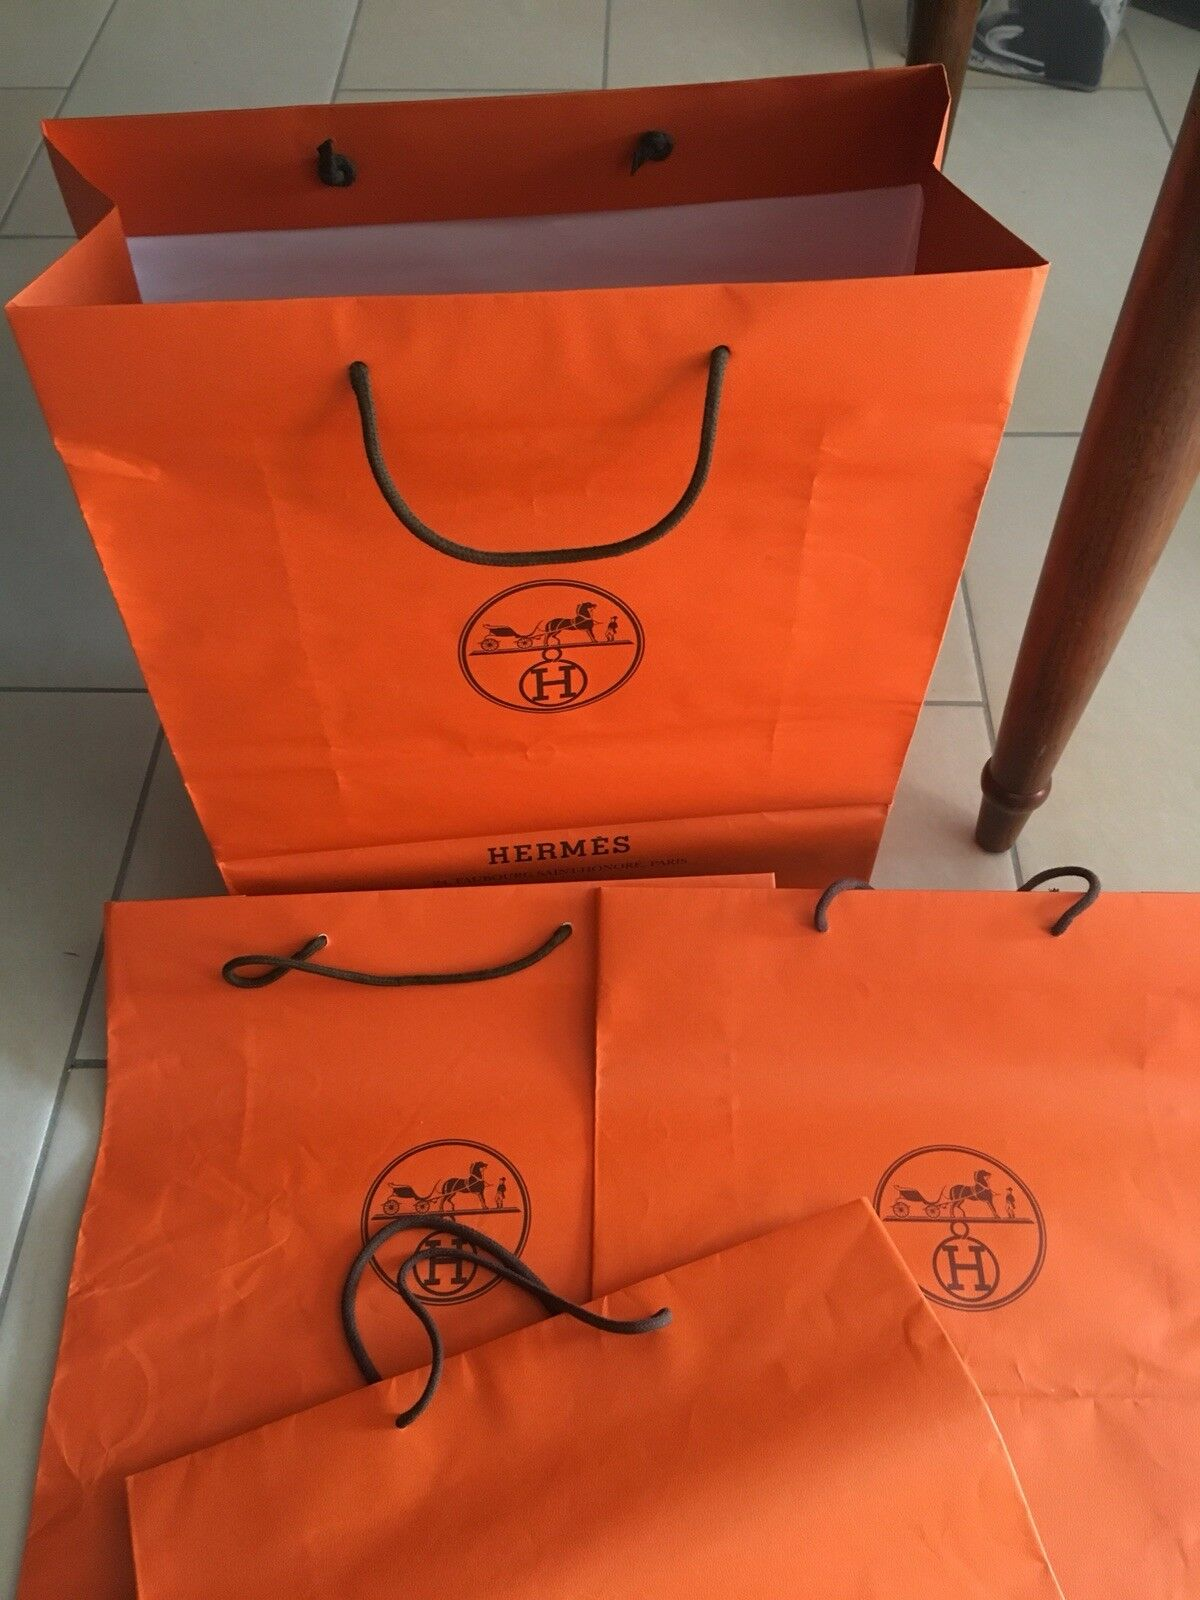 HERMES XL Orange shopping Bag Giftbags